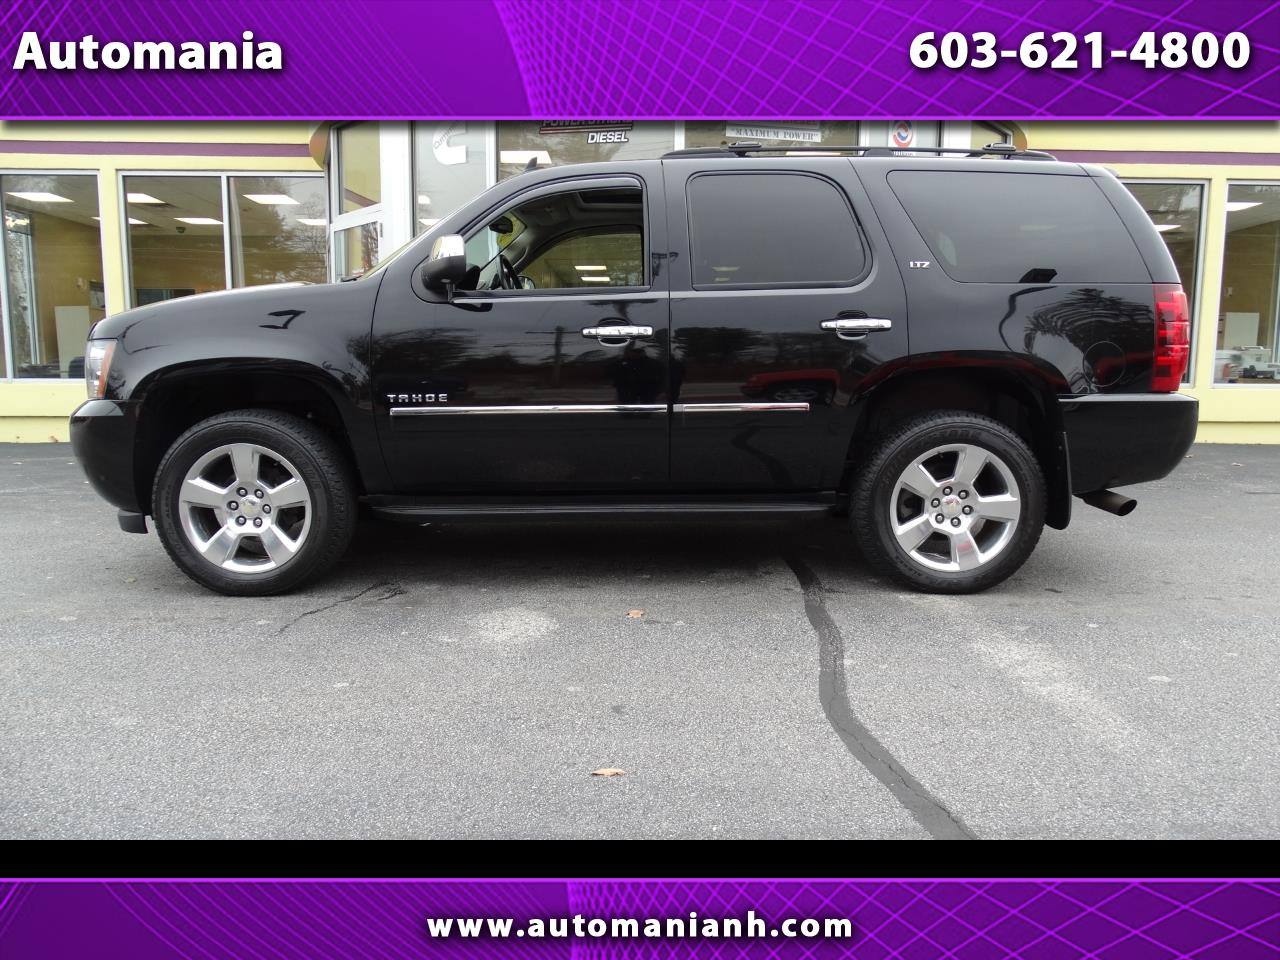 2013 Chevrolet Tahoe LTZ 4WD MOON ROOF DVD NAV REAR BUCKET SEATS